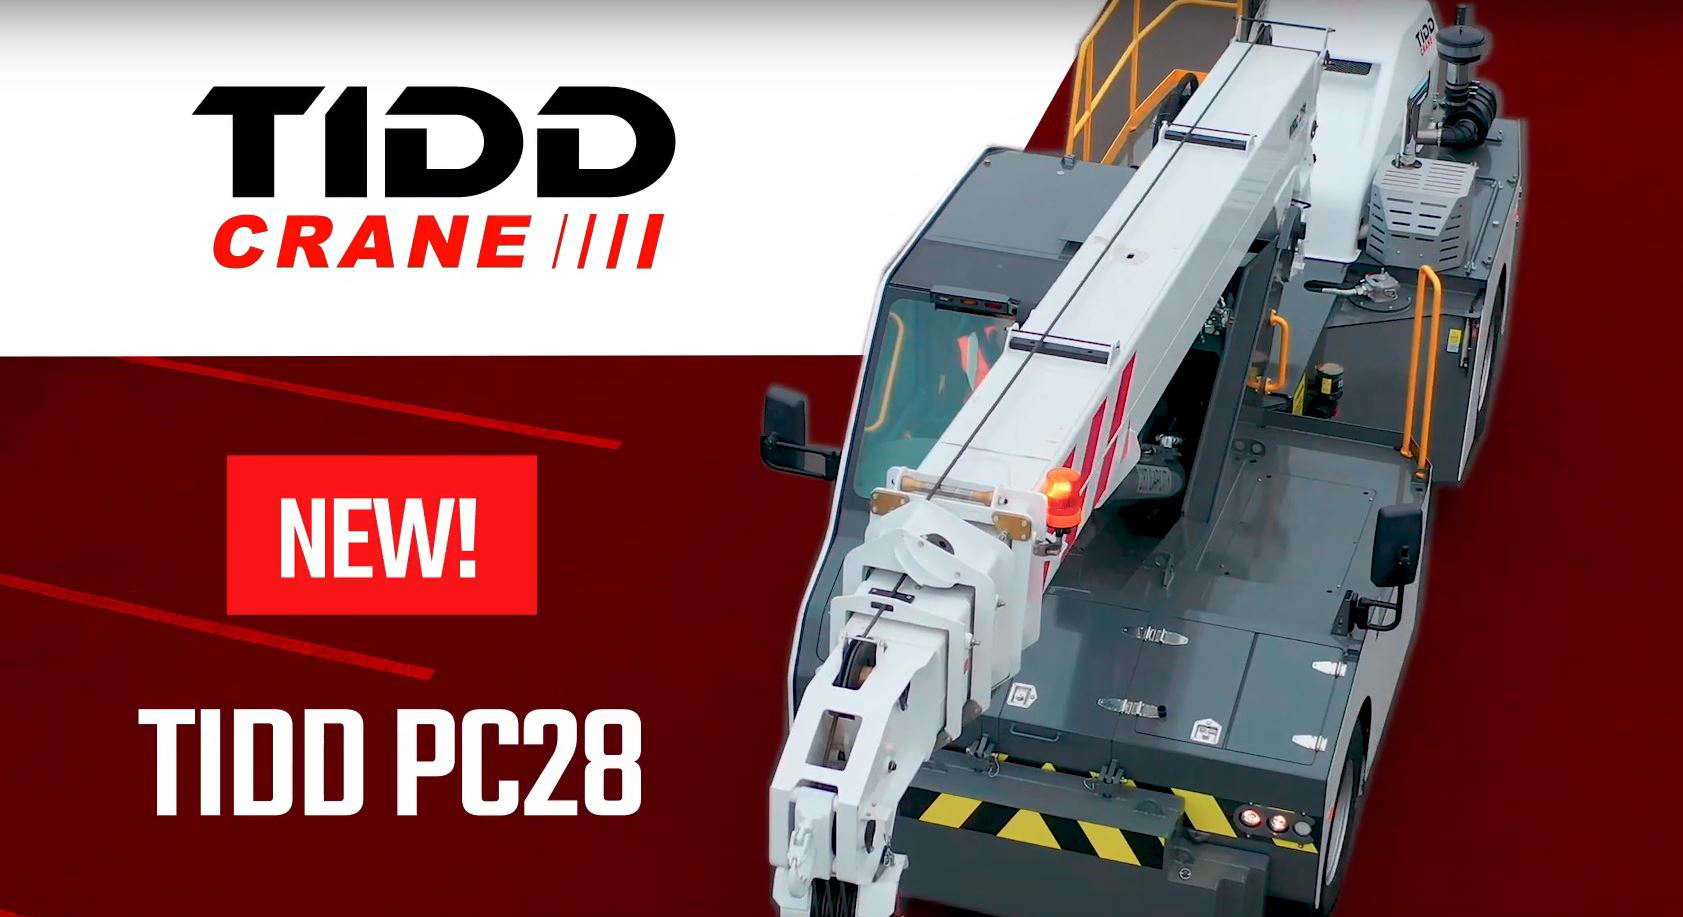 TIDD PC28 Product Video